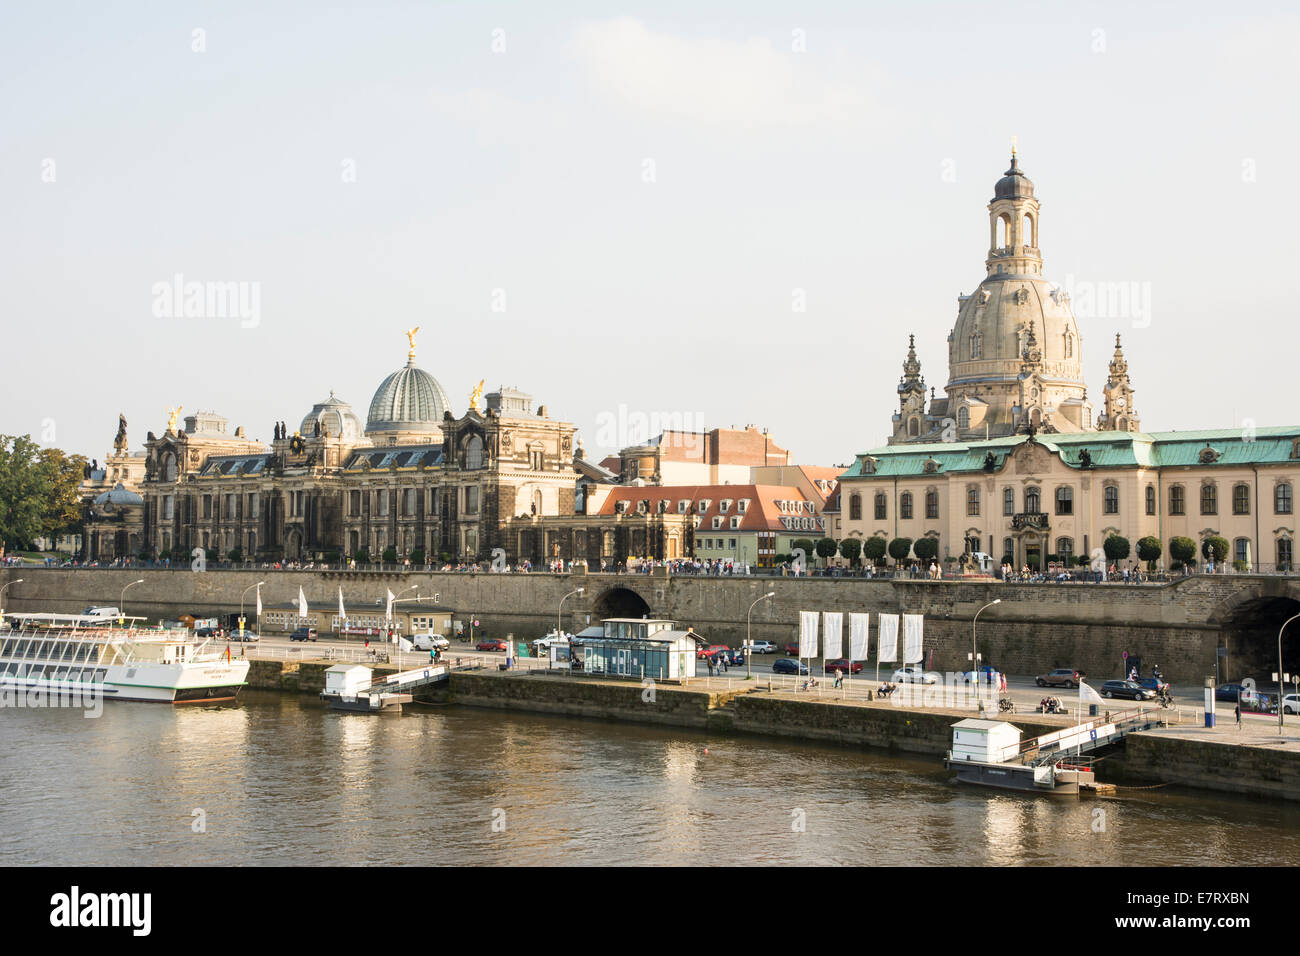 DRESDEN, GERMANY - SEPTEMBER 4: Tourists at the promenade of the river Elbe in Dresden, Germany on September 4, - Stock Image